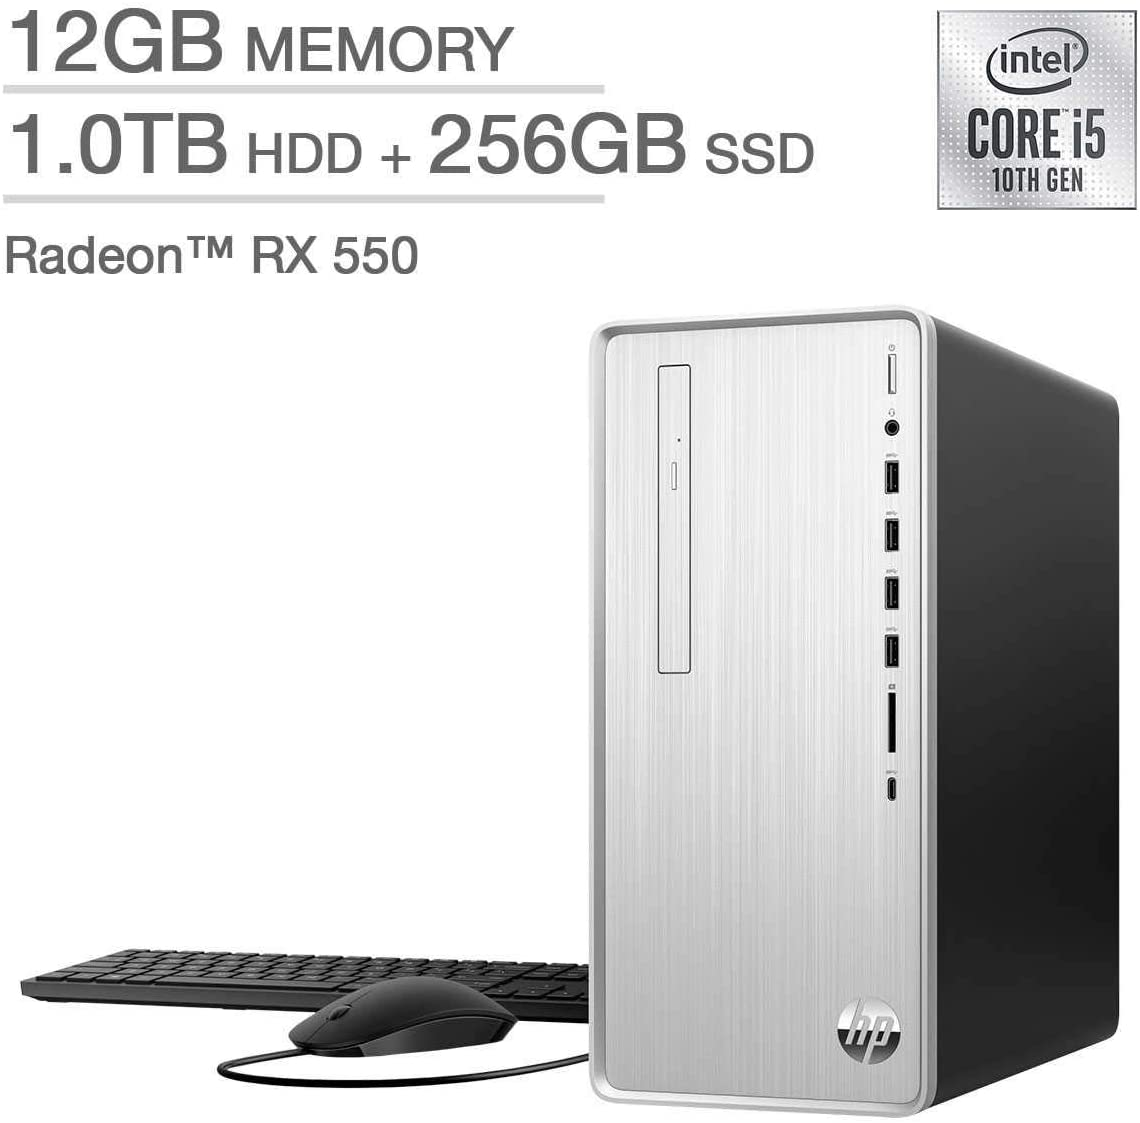 HP Pavilion Desktop - TP01-1127c 10th Gen Intel Core i5-10400F - AMD Radeon RX 550 12GB DDR4-2666 SDRAM 256 GB SSD + 1TB 7200RPM SATA Hard Drive